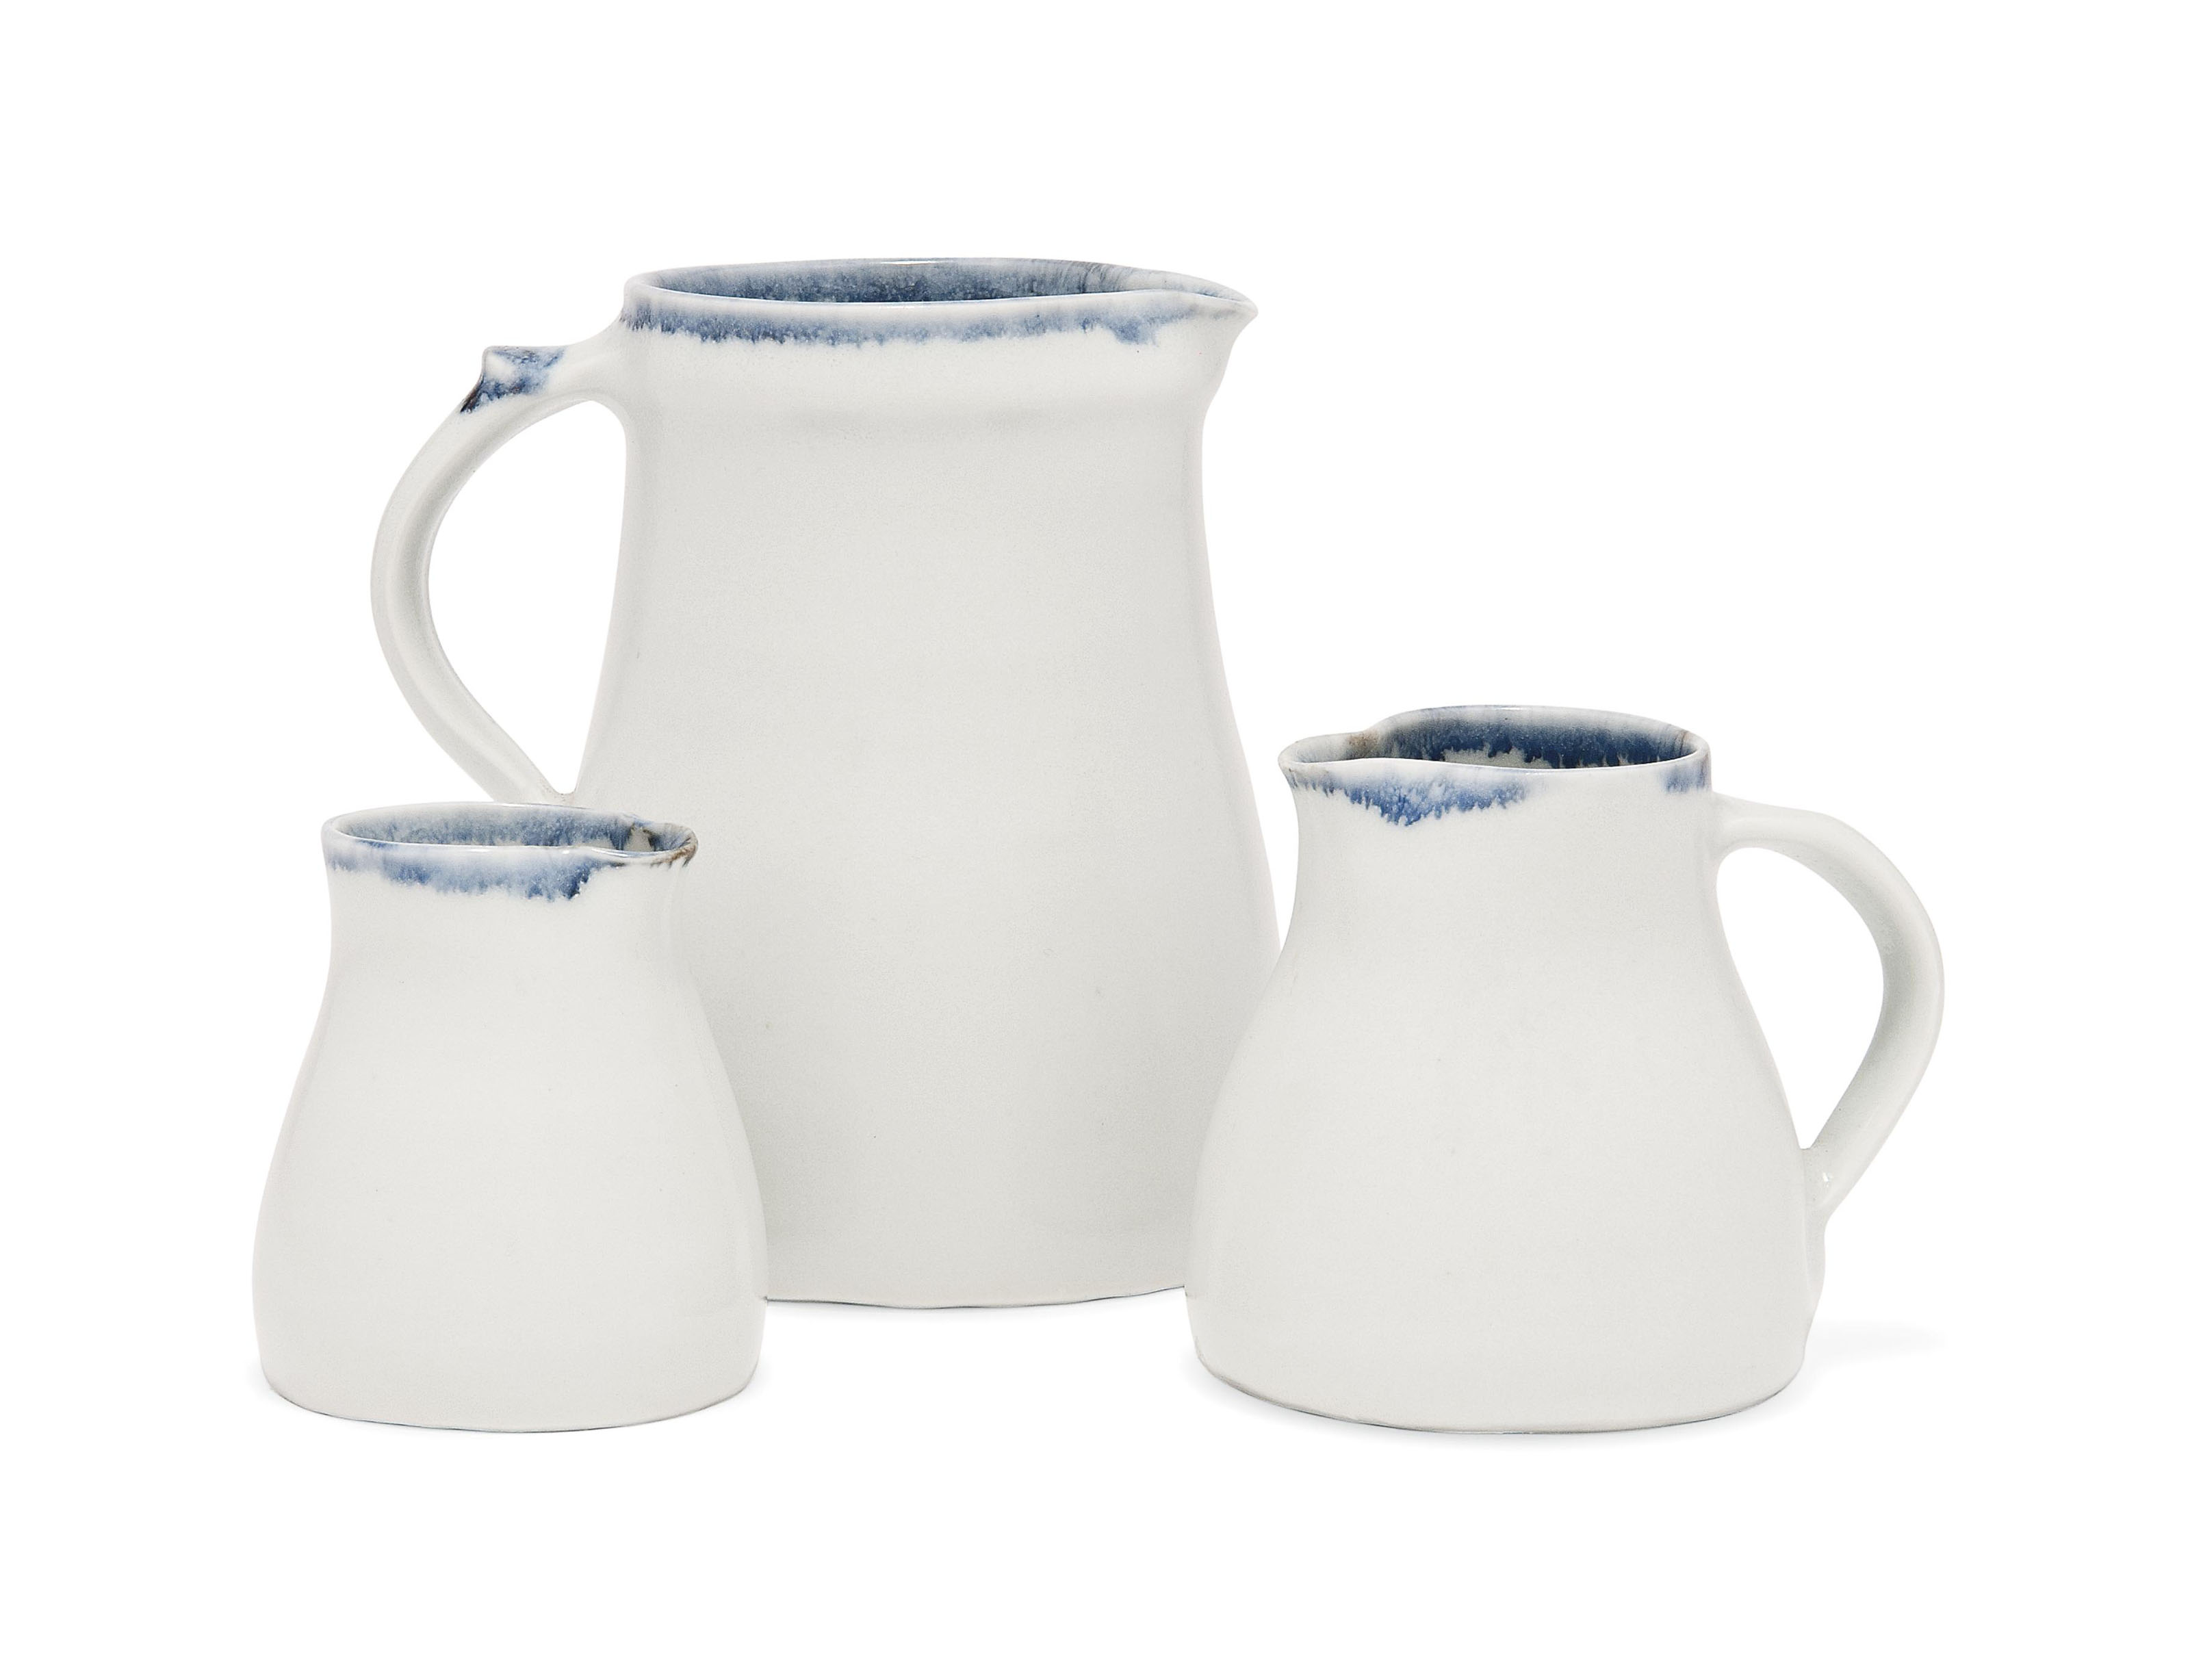 A SET OF THREE EDMUND DE WAAL (B. 1964) GLAZED PORCELAIN JUGS